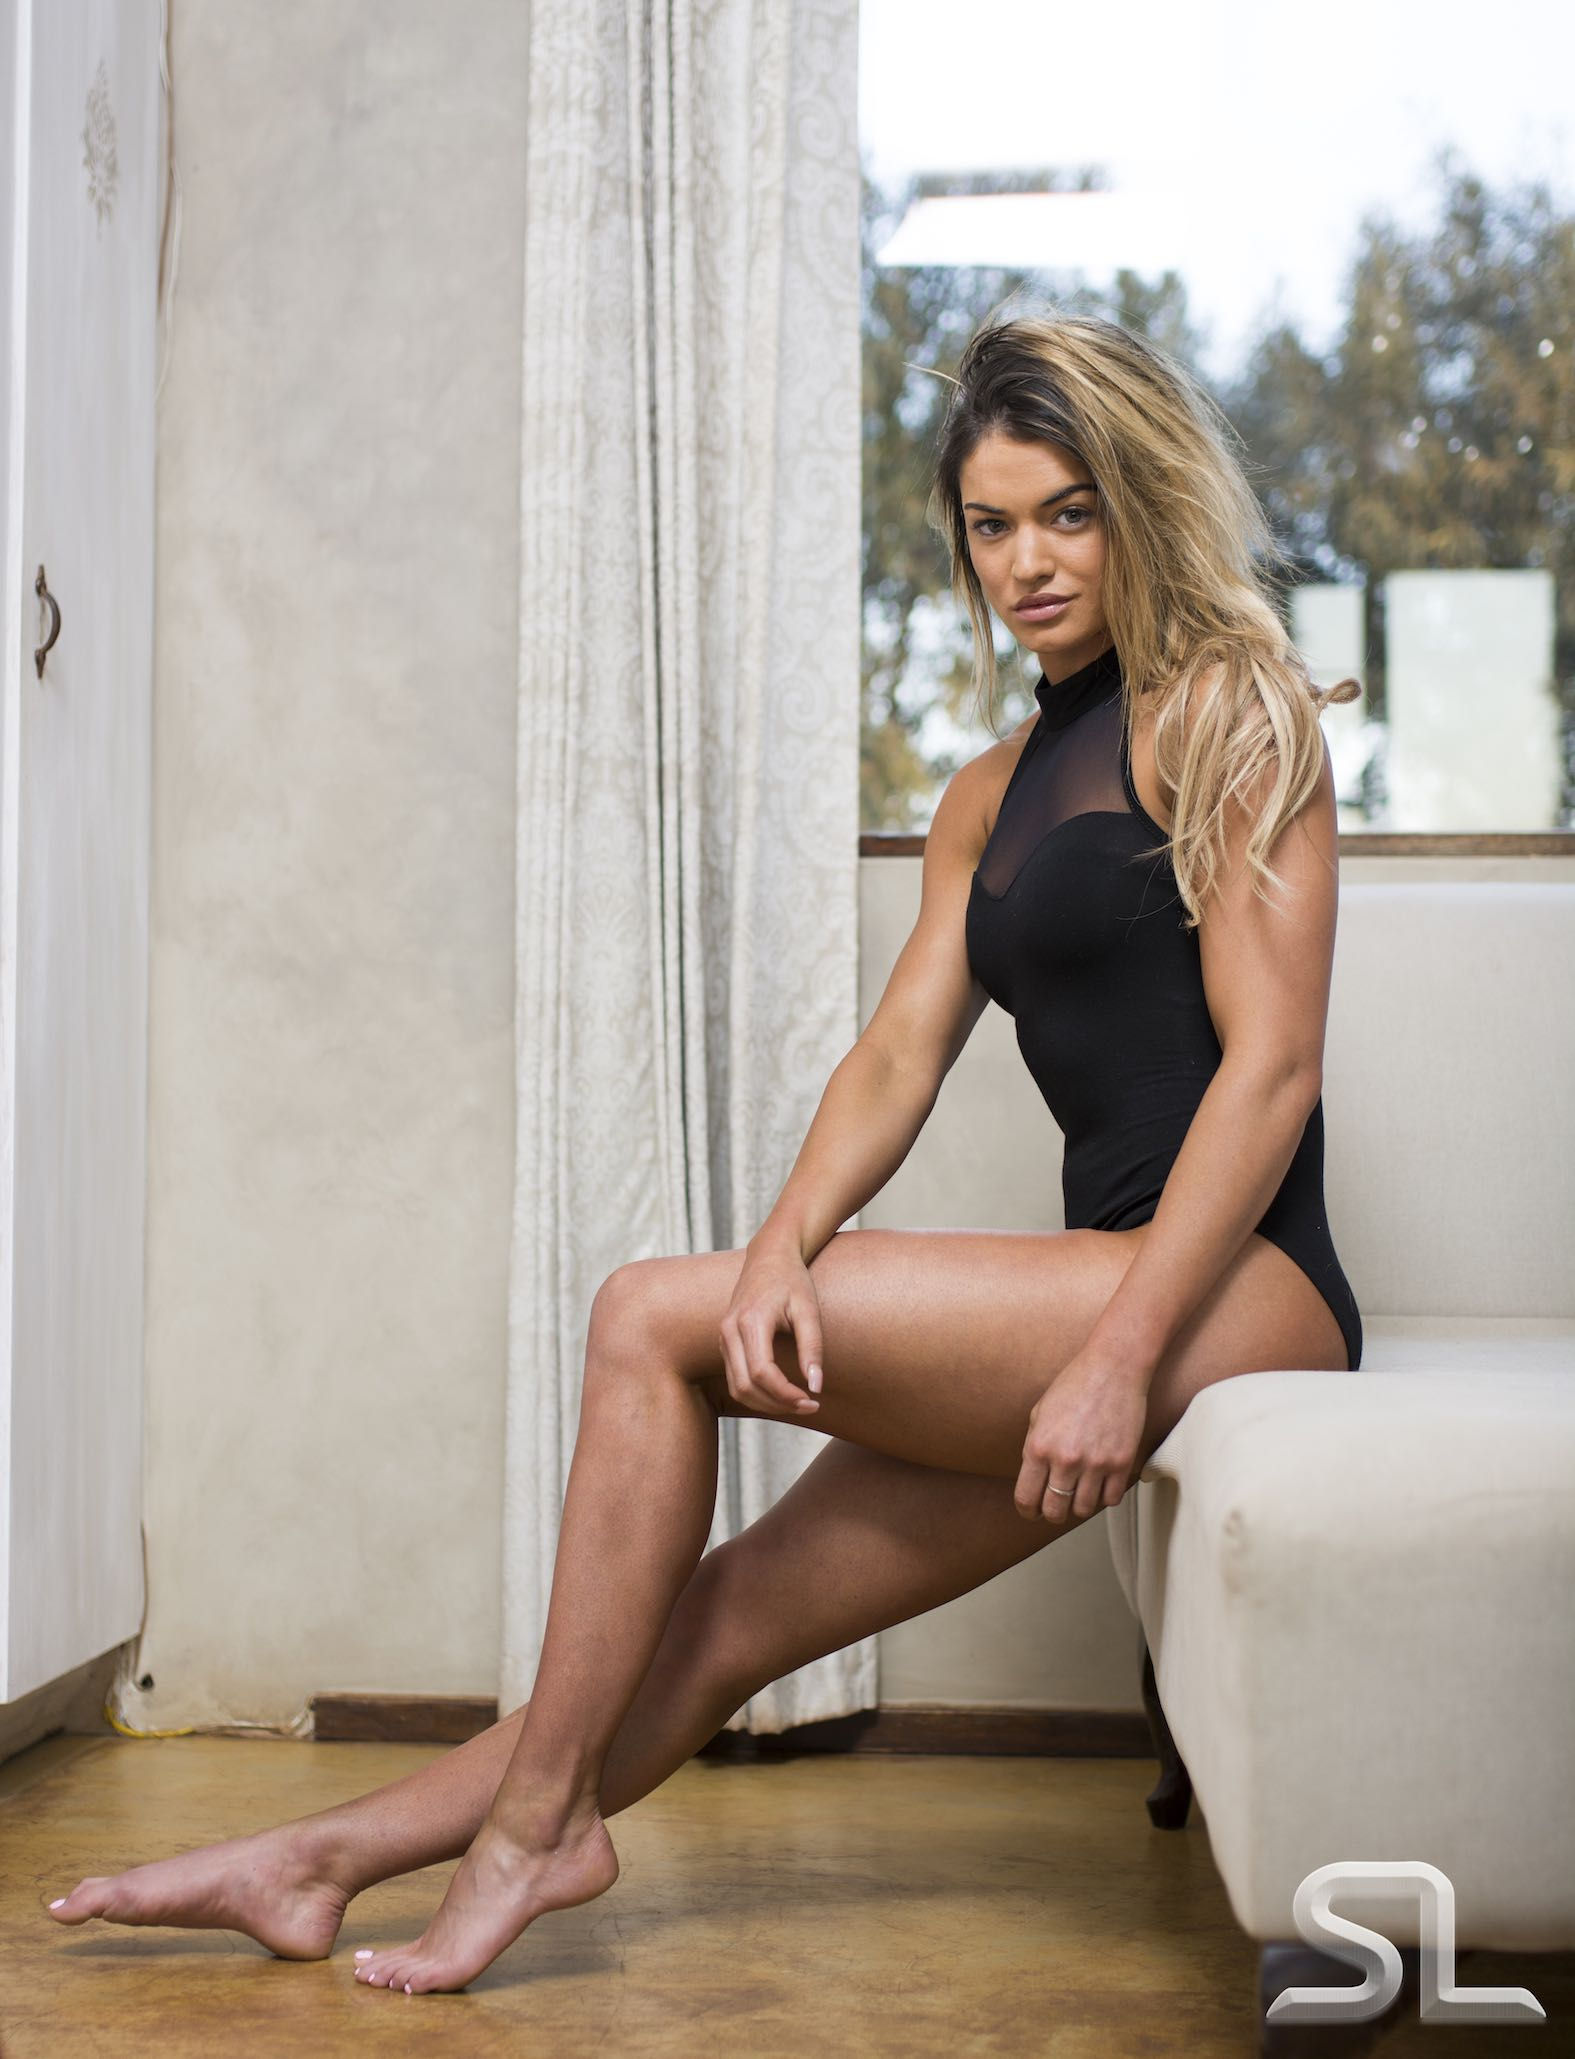 Our South African Girls feature with Shelby Jessica Neves